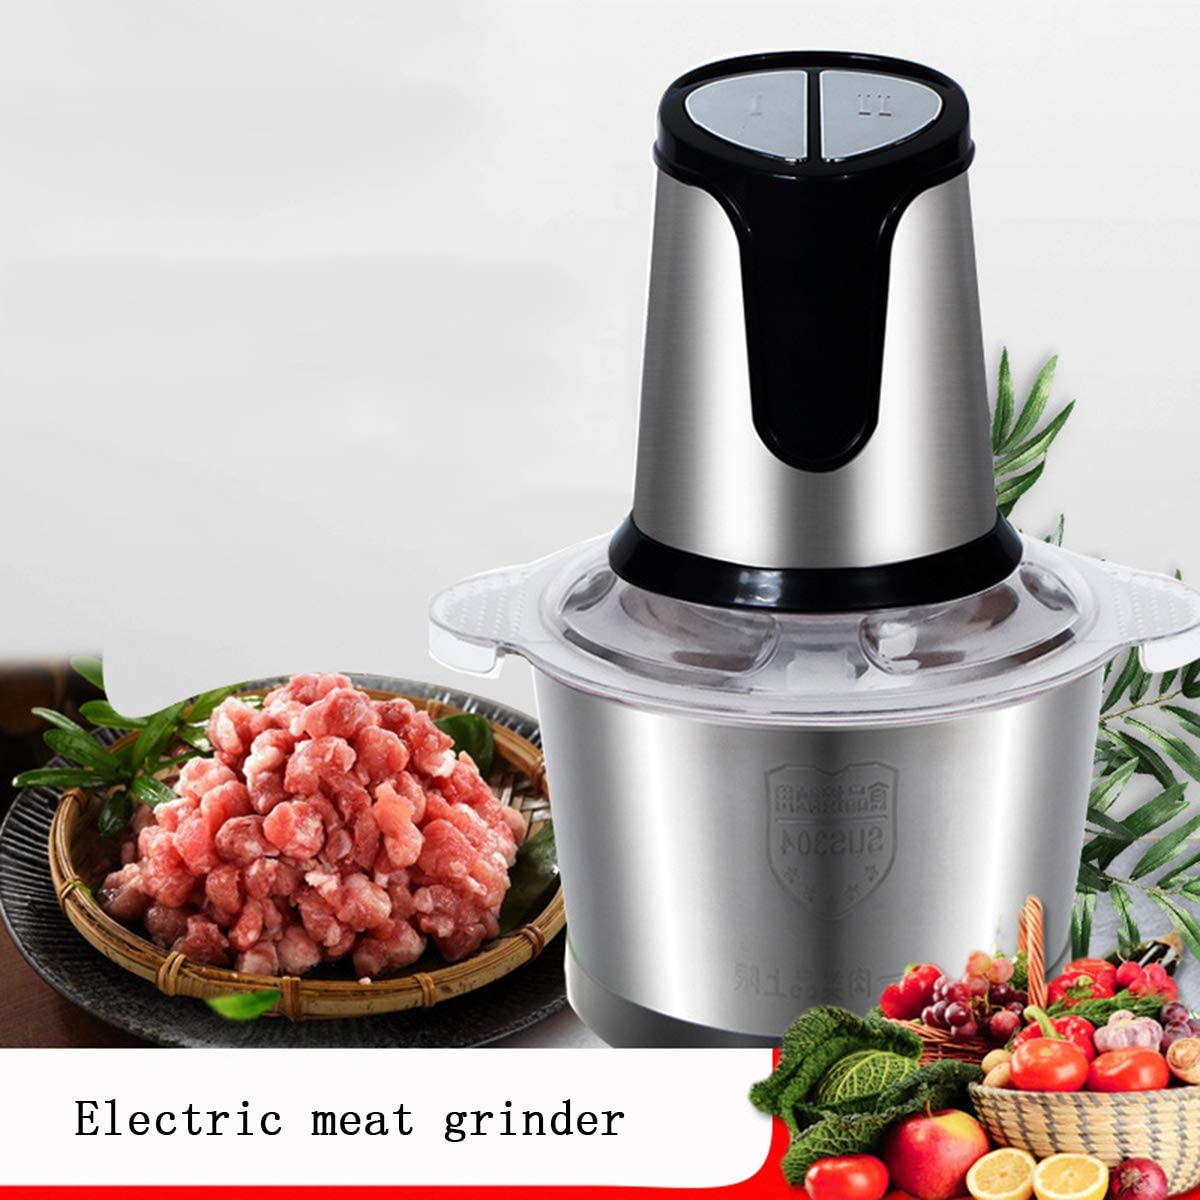 SHUHAO Electric Meat Grinder, Garlic Puree Blender, Kitchen Food Processor with Two-Speed Adjustable for Baby Food Condiments and Fillings